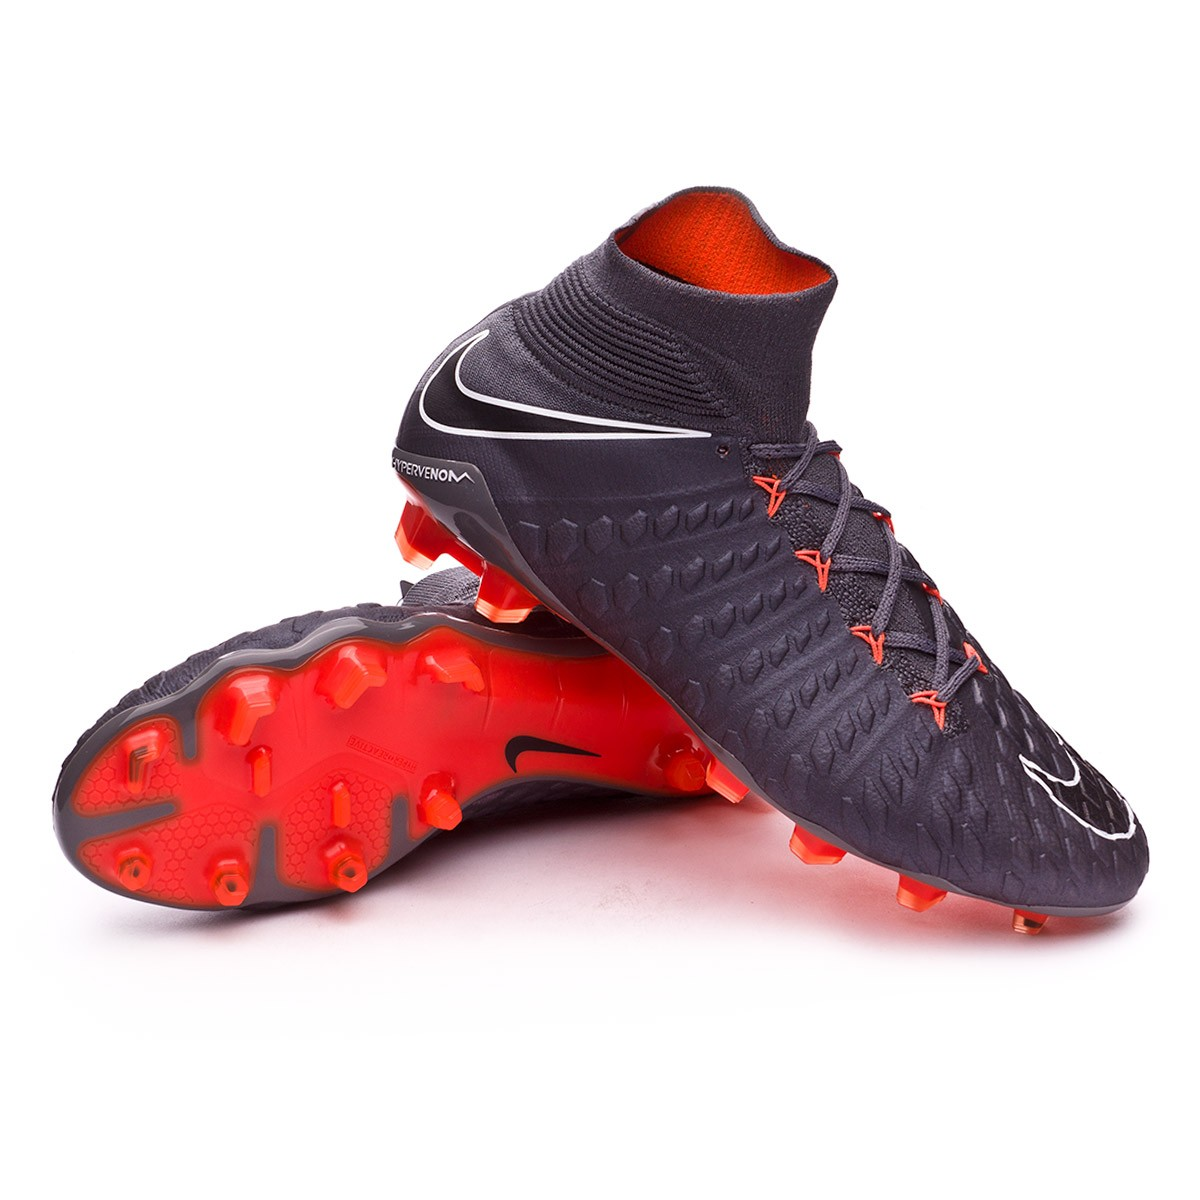 464f7fa1d Football Boots Nike Hypervenom Phantom III Elite DF FG Dark grey ...